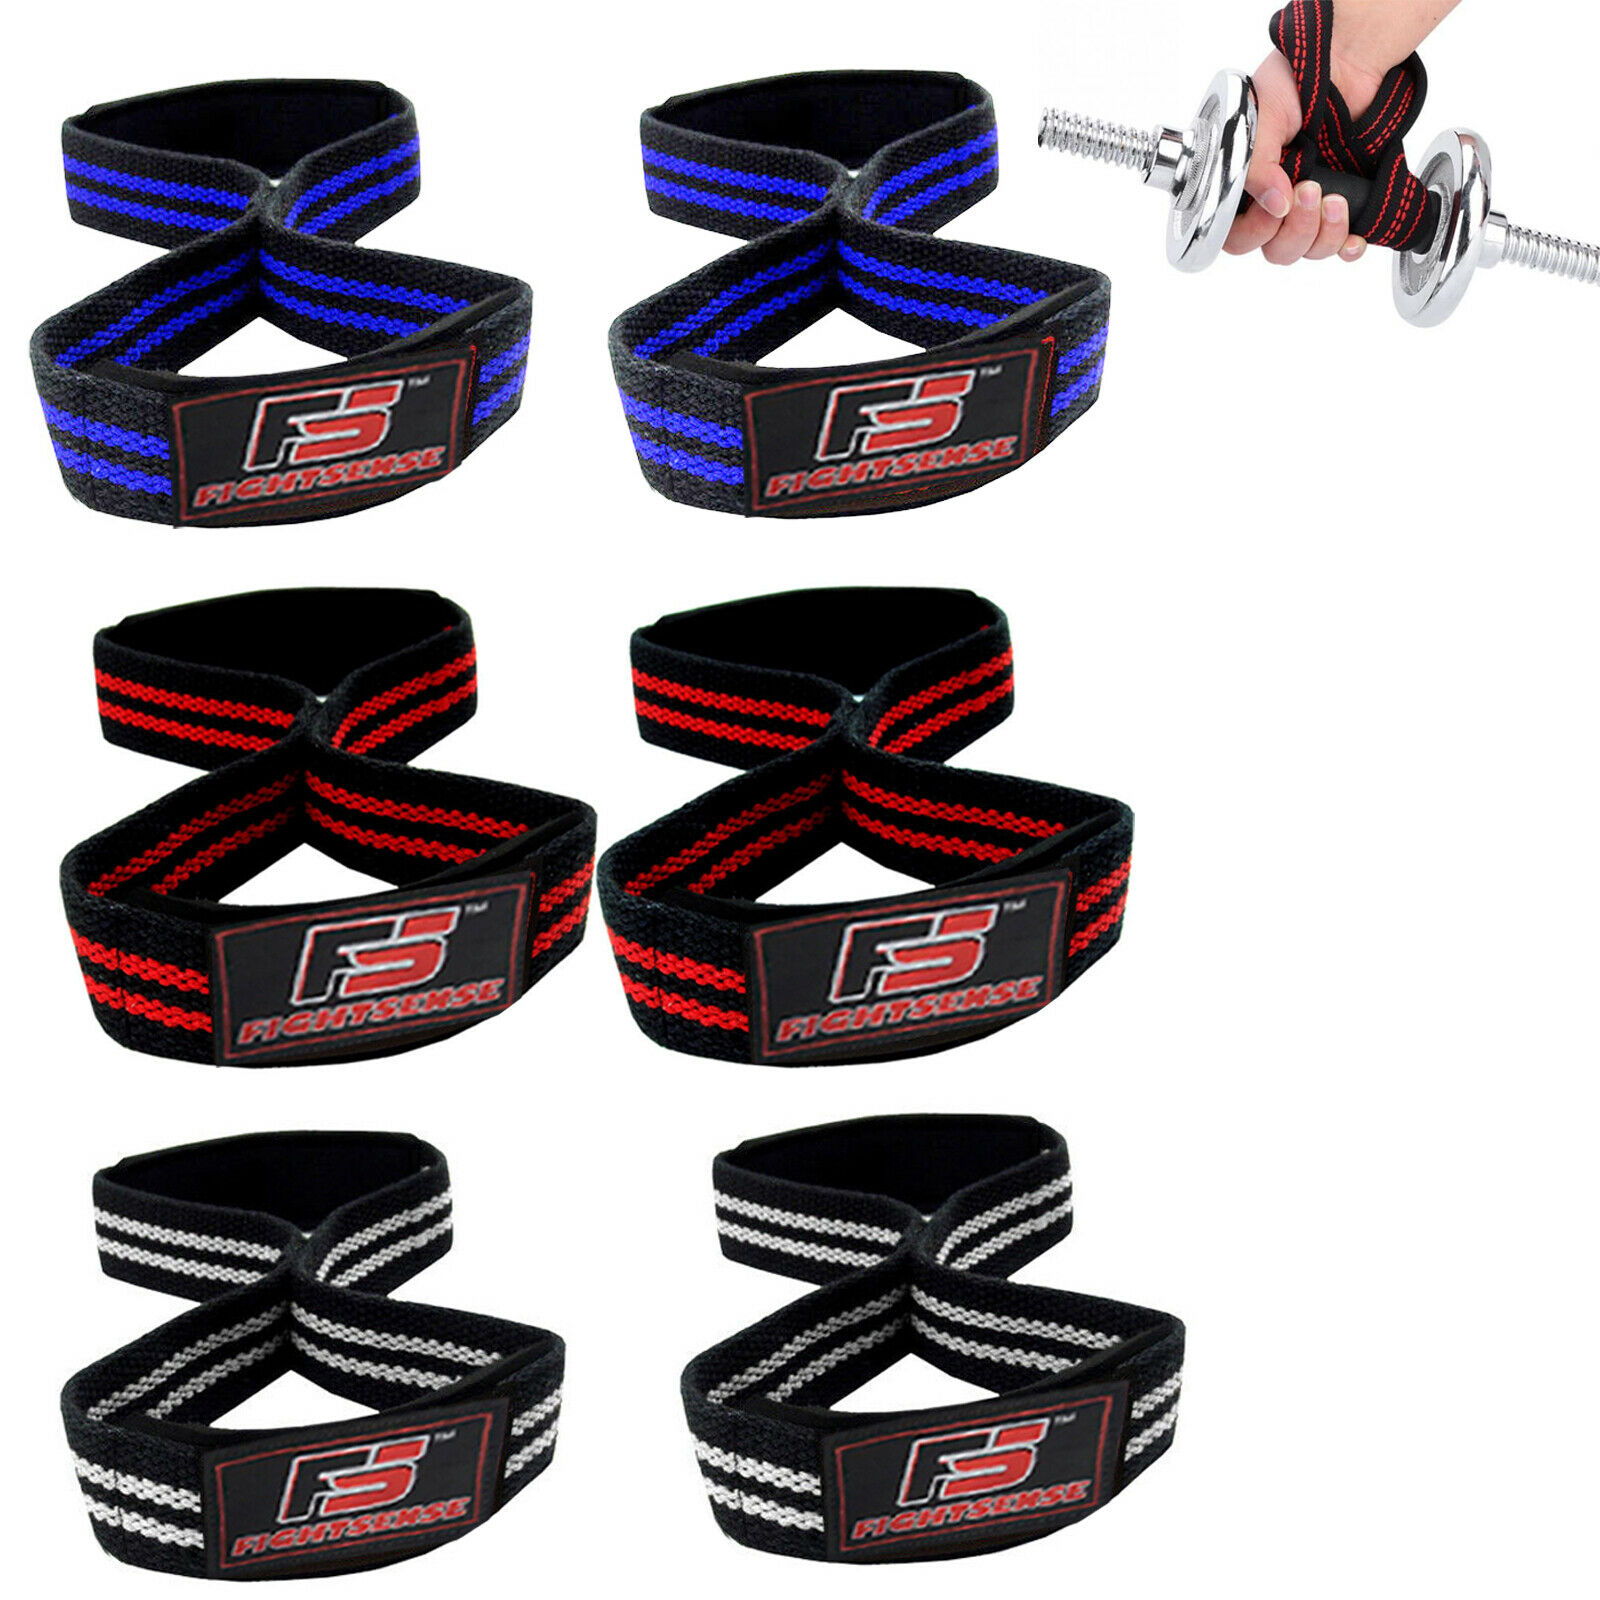 FS Figure 8 Padded Cuff Weight Lifting Training Gym Straps H